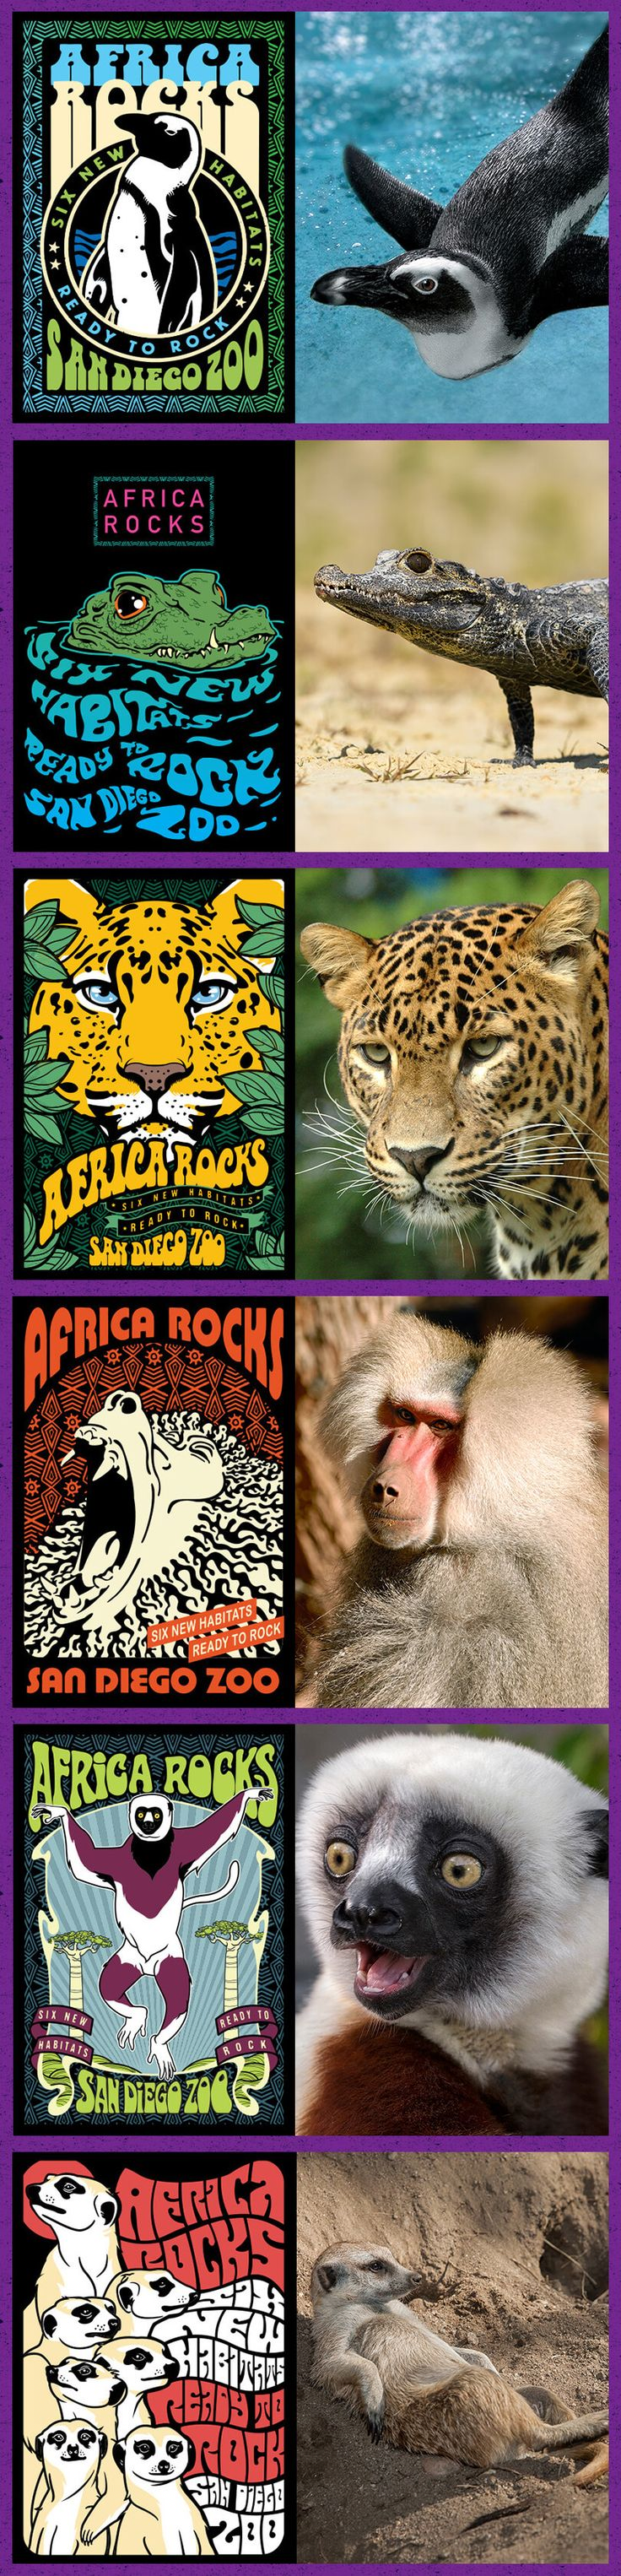 """Conrad Prebys Africa Rocks features an impressive lineup of unusual and  striking species ready for their rise to fame. Take our quiz to see  which of our """"rock stars"""" you identify with and automatically be entered  to win Africa Rocks merchandise and an Inside Look tour for two."""